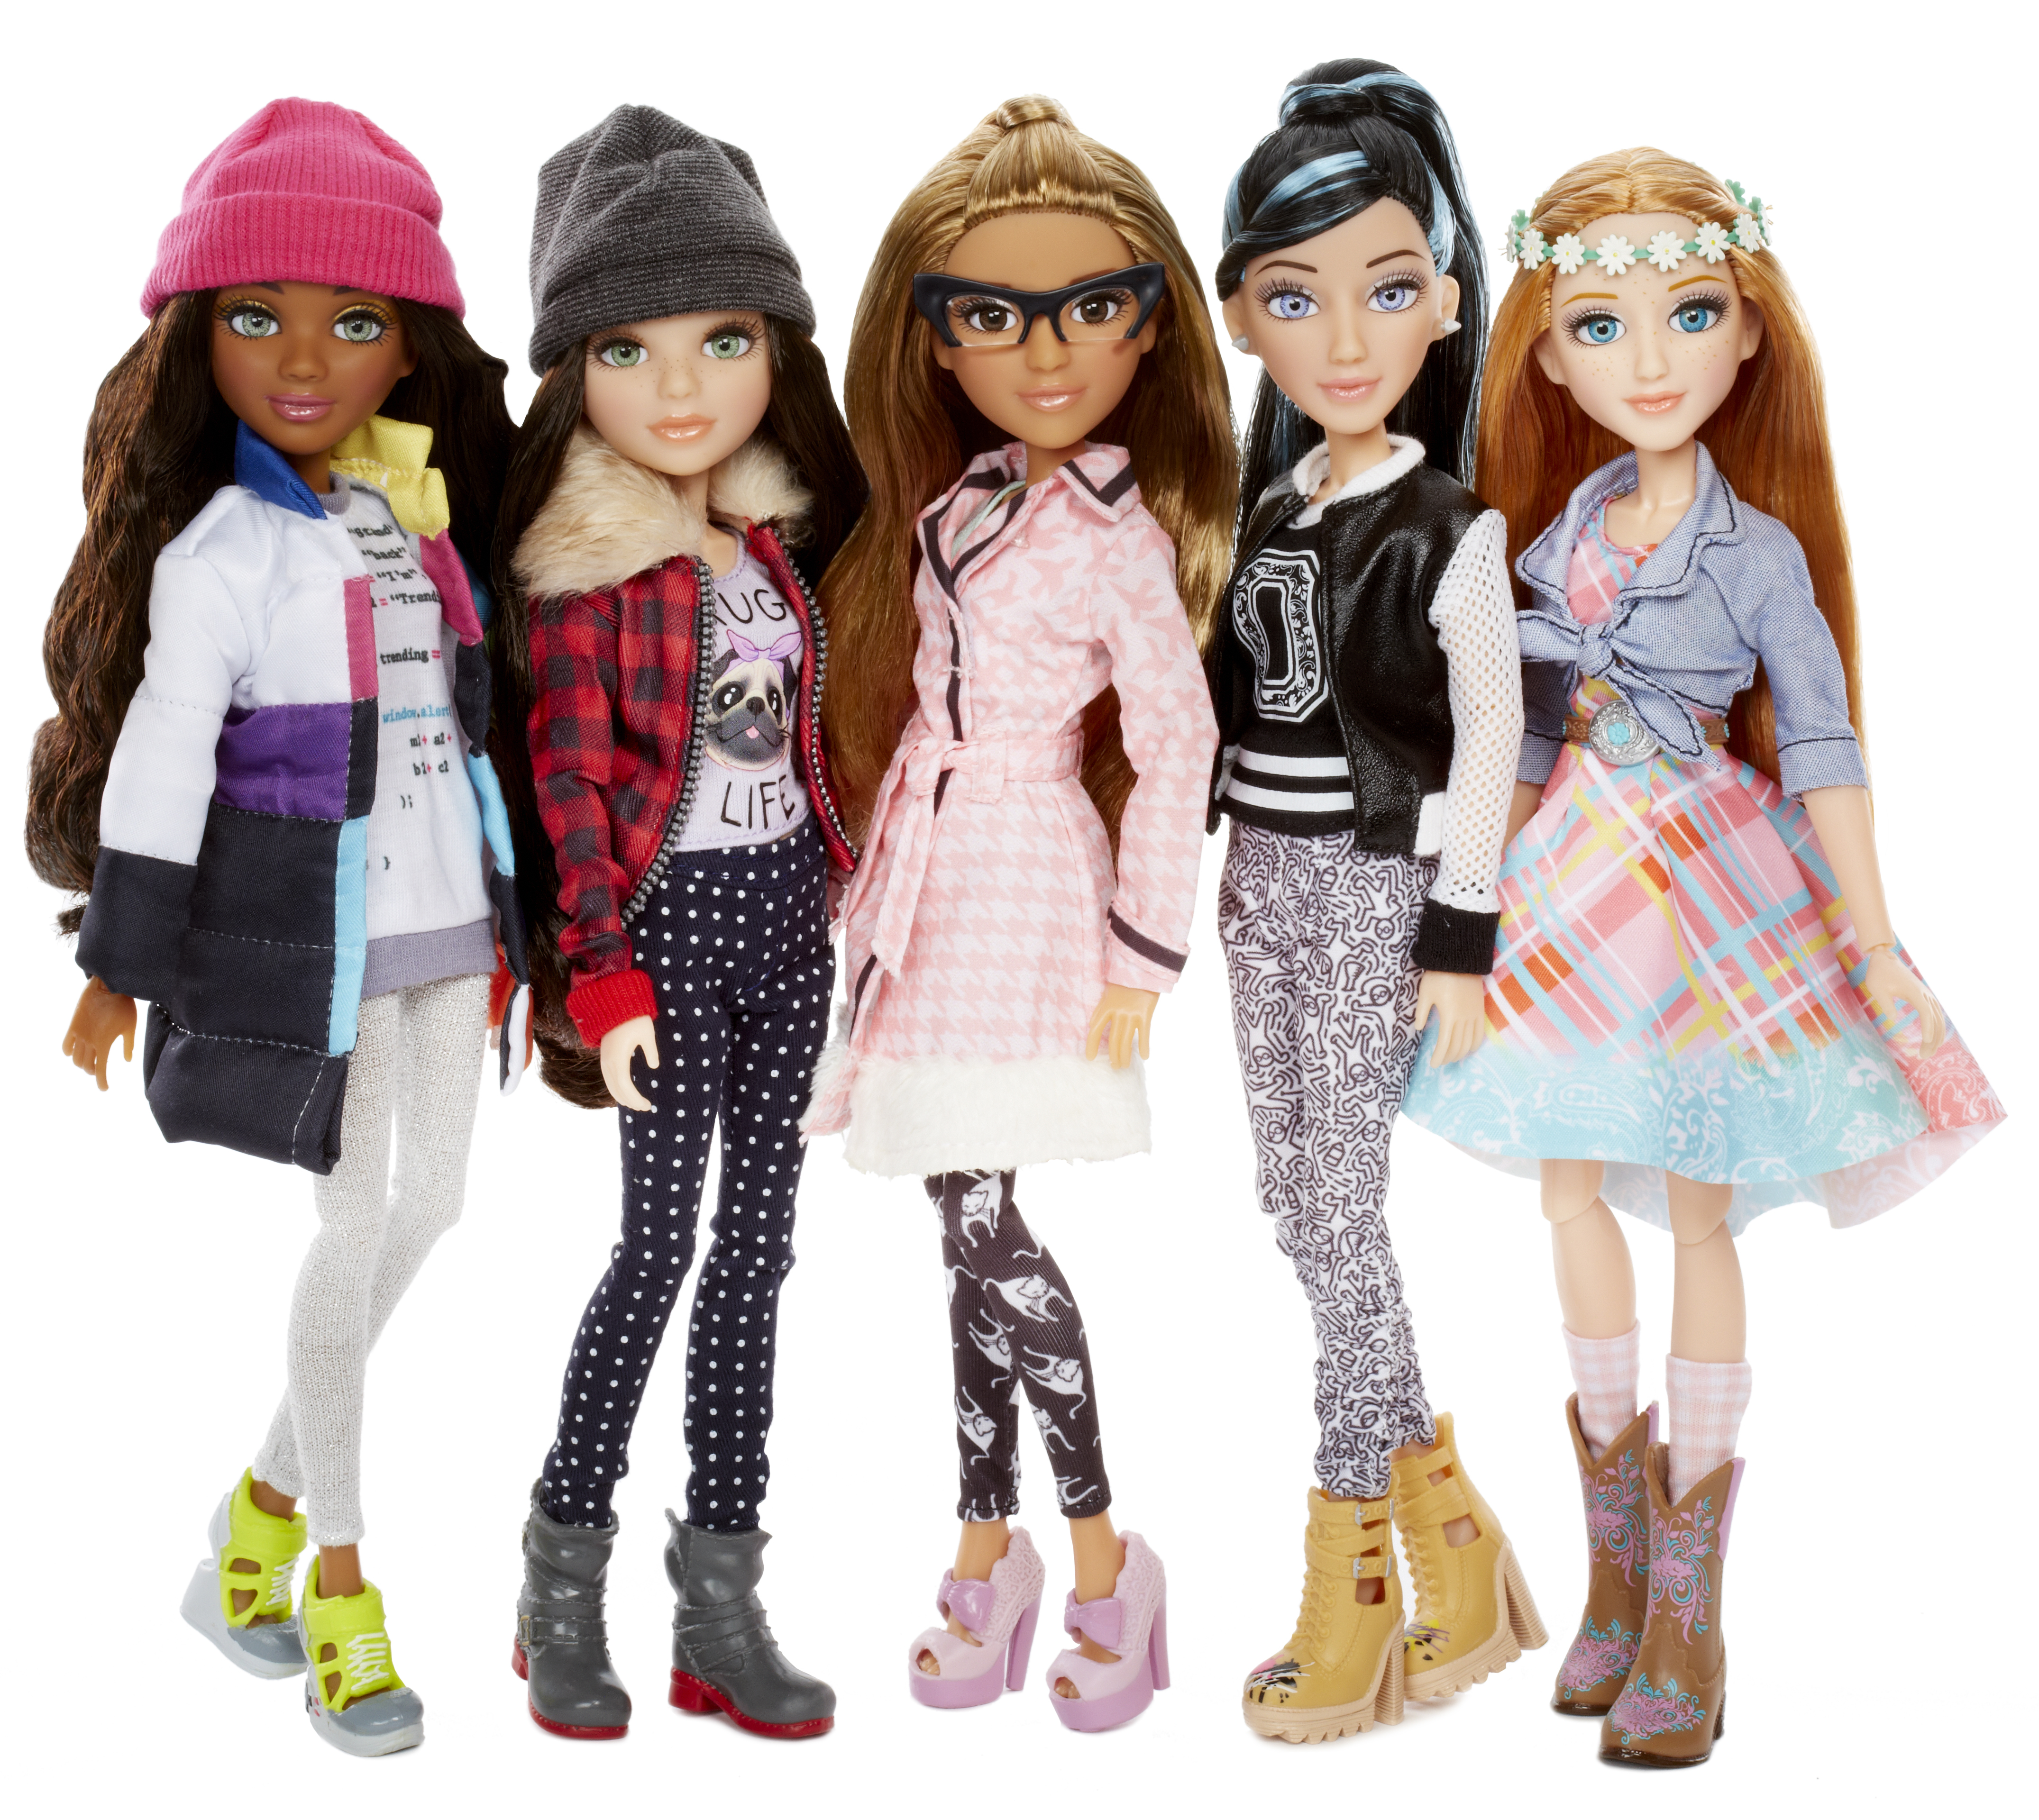 project mc2 season 2 on netflix and the new experiments